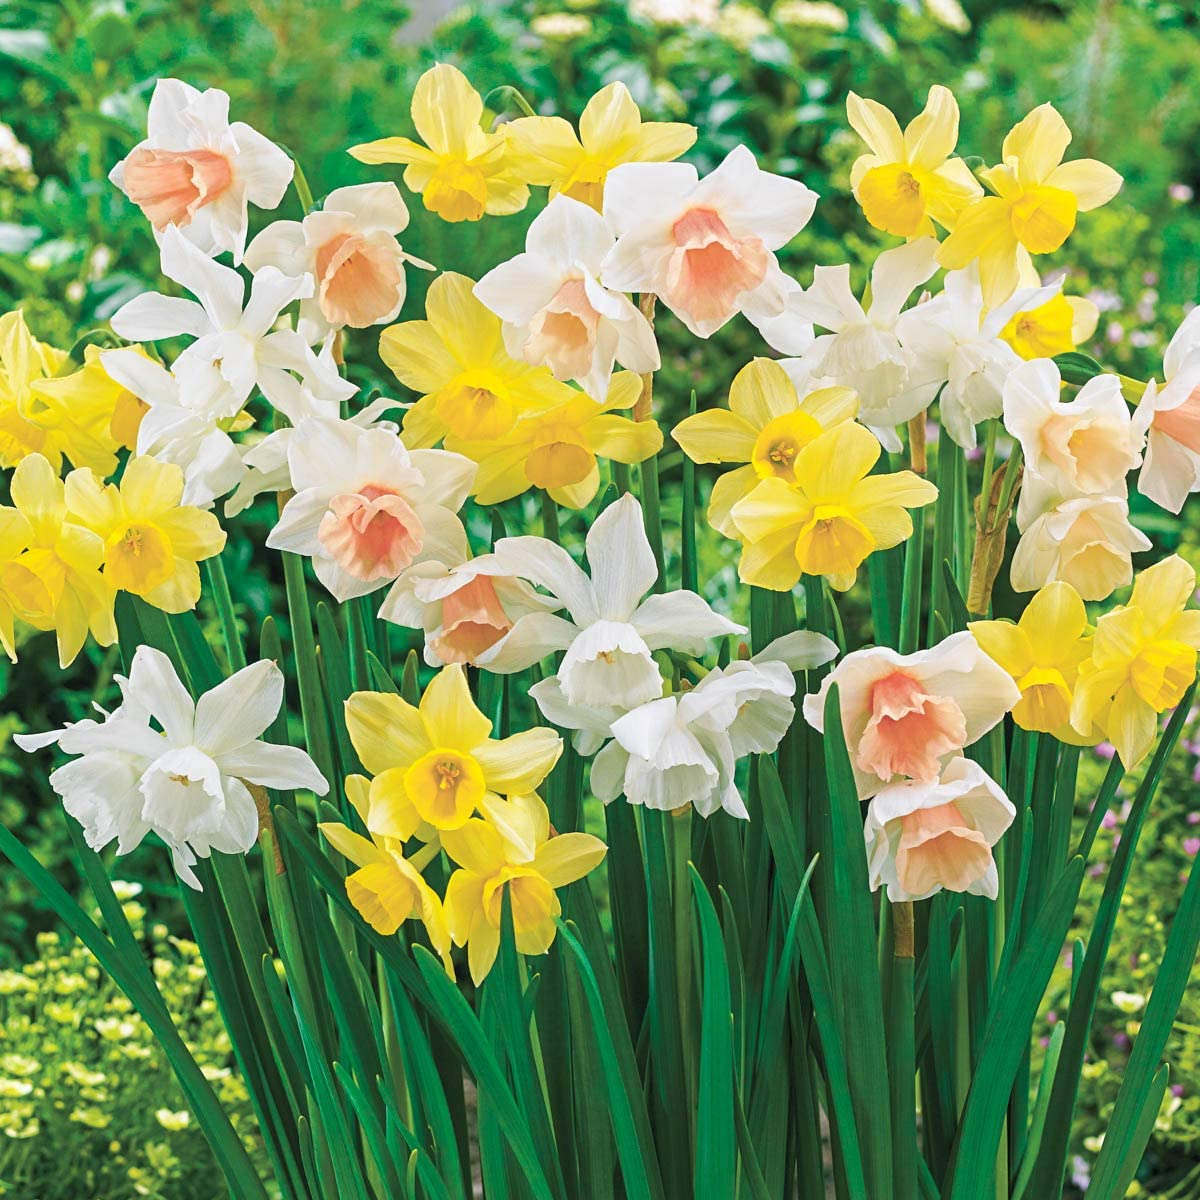 BRECK'S Three Months of Daffodils Spring Flowering Bulb Mixture -Includes 40 Bulbs per Offer